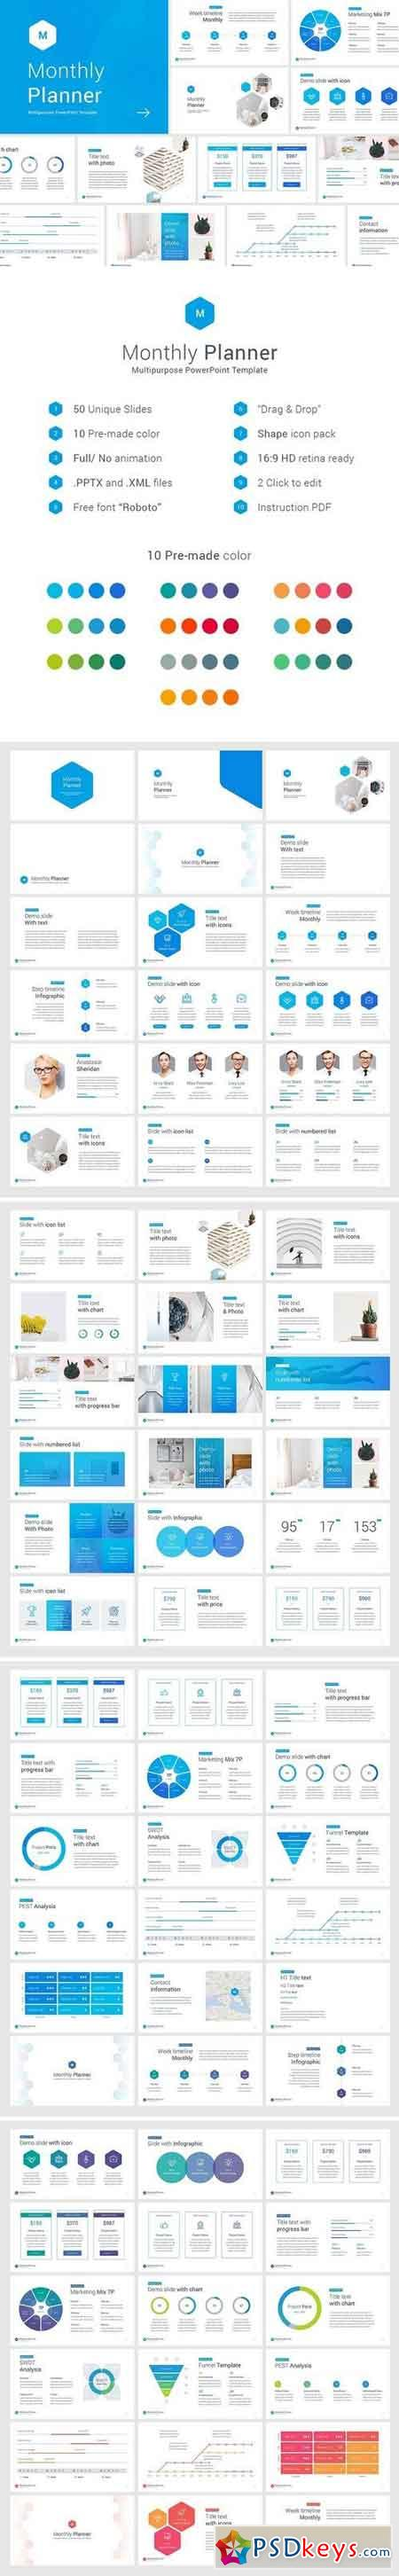 Monthly planner PowerPoint Template 2091012